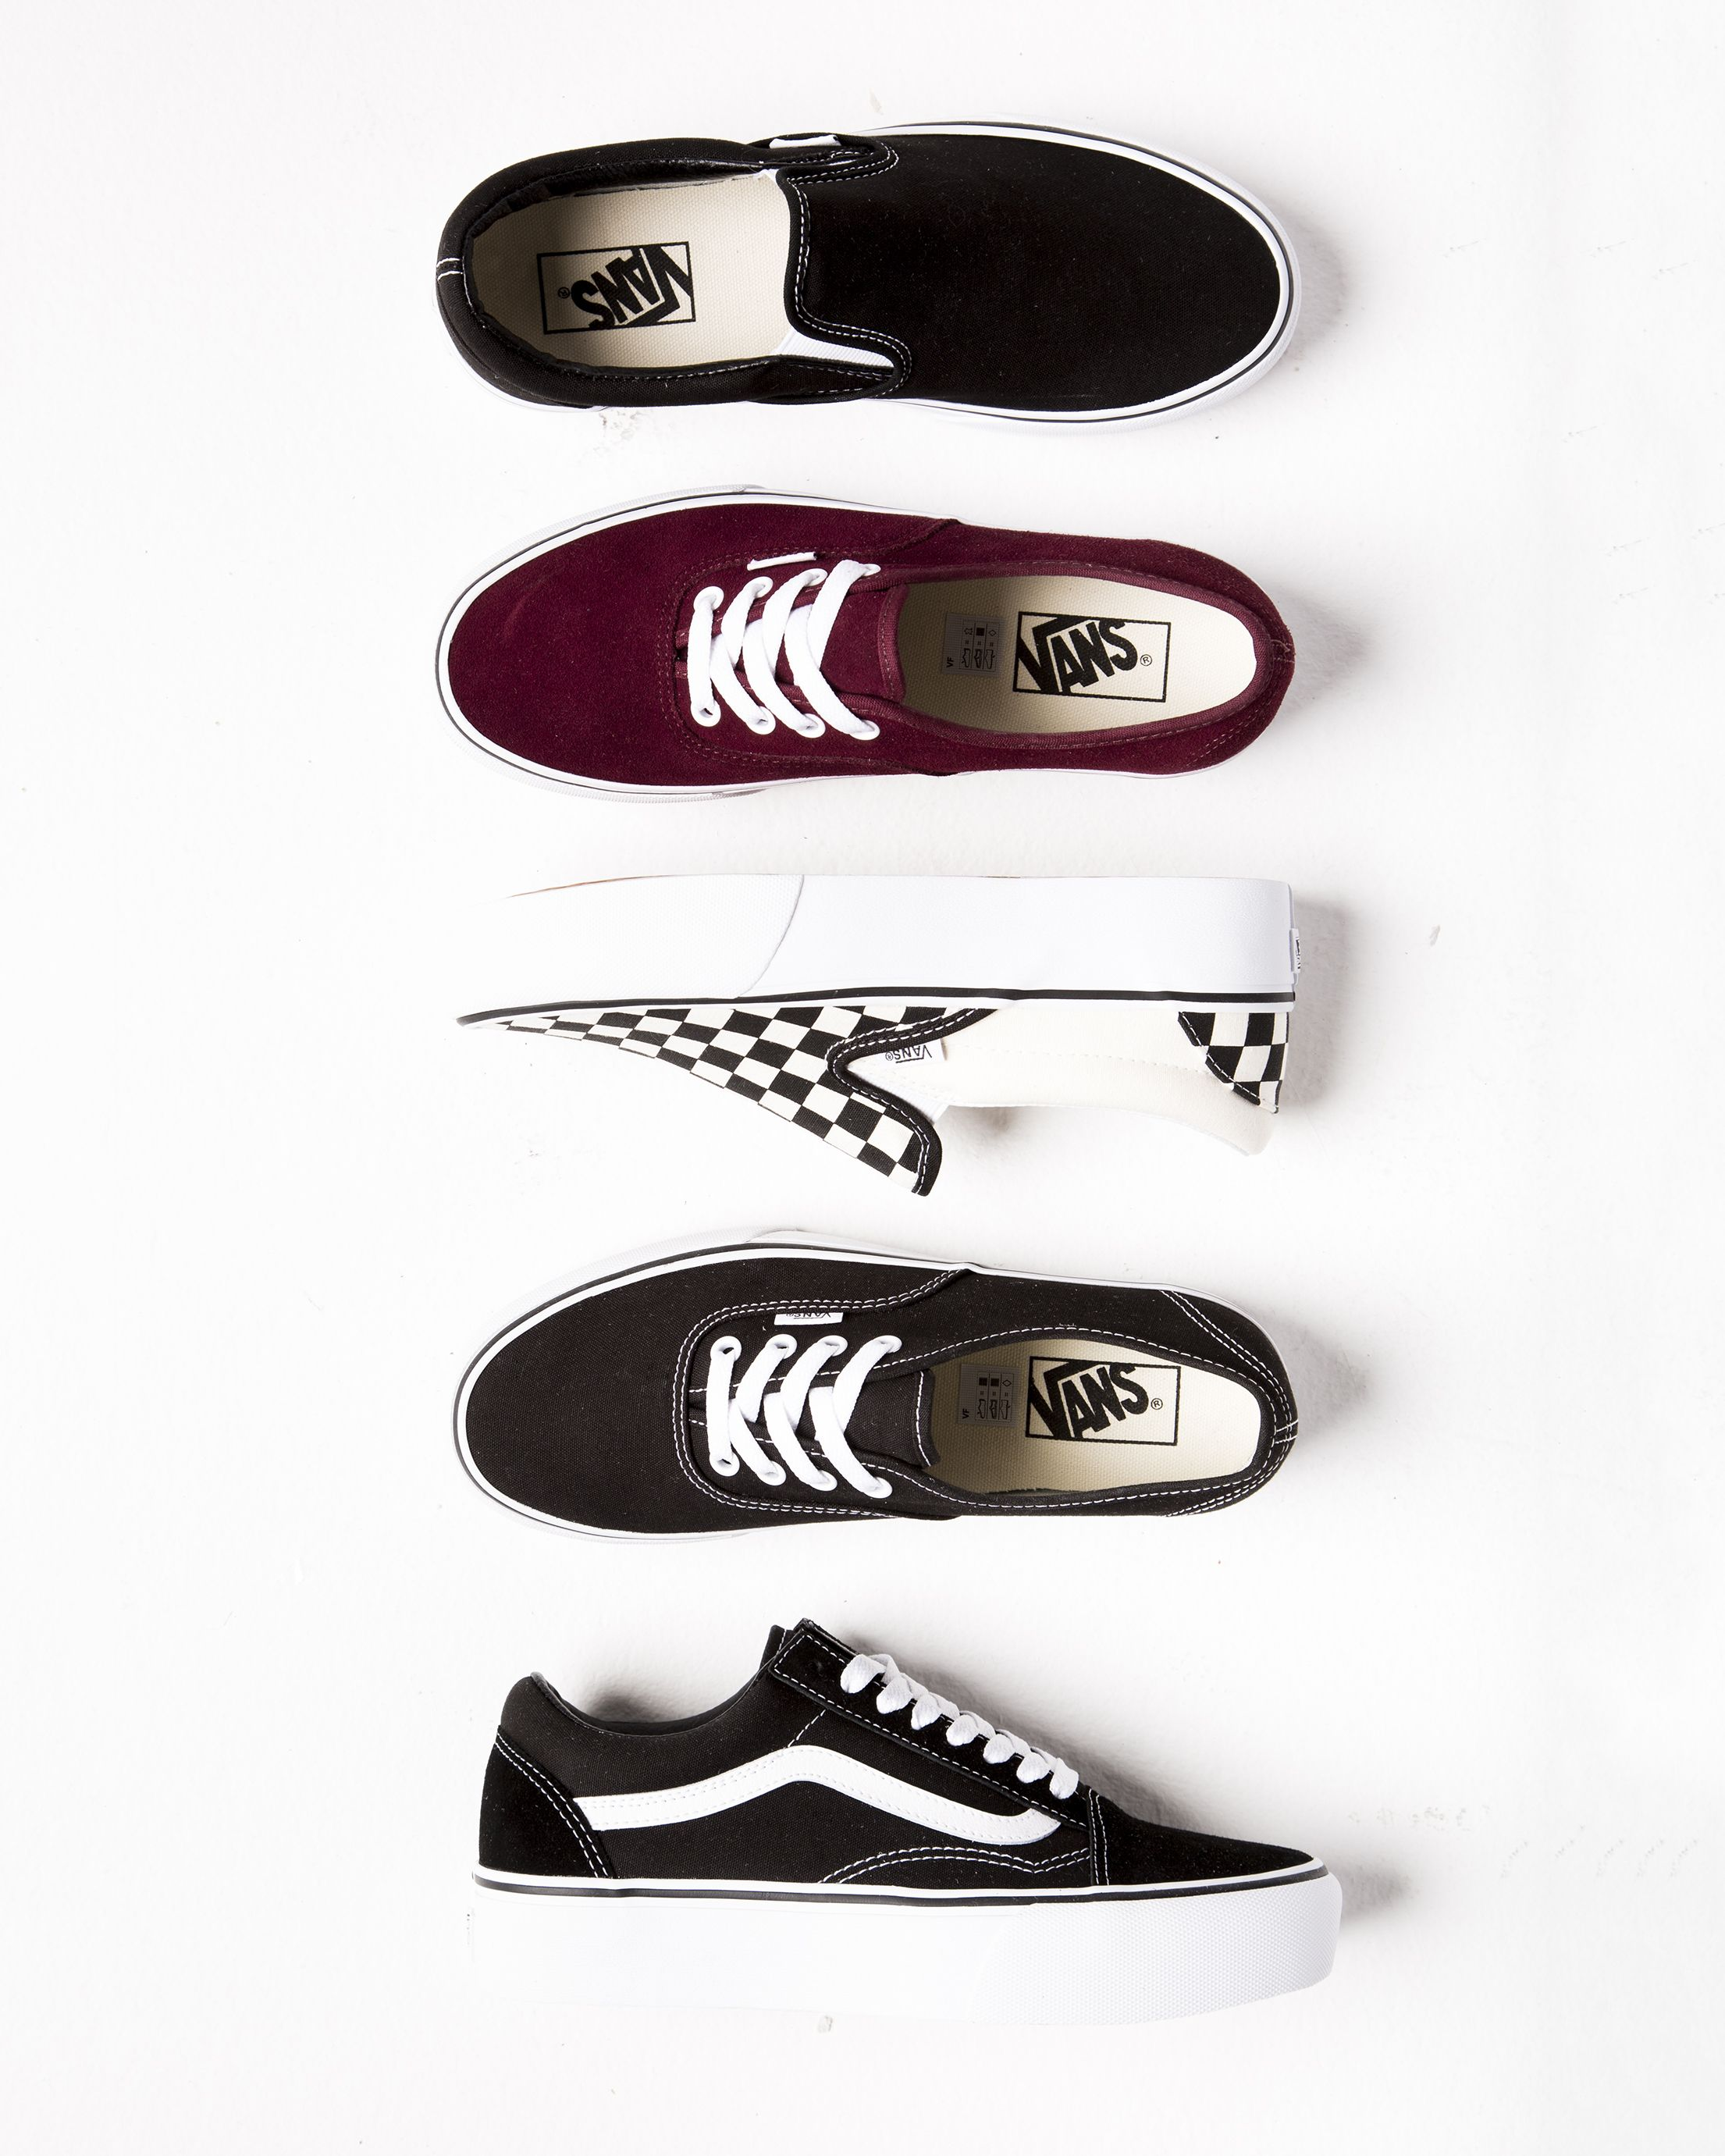 0543675b7d0 All Vans, all the time | ON TREND in 2019 | Shoes, Vans checkerboard ...